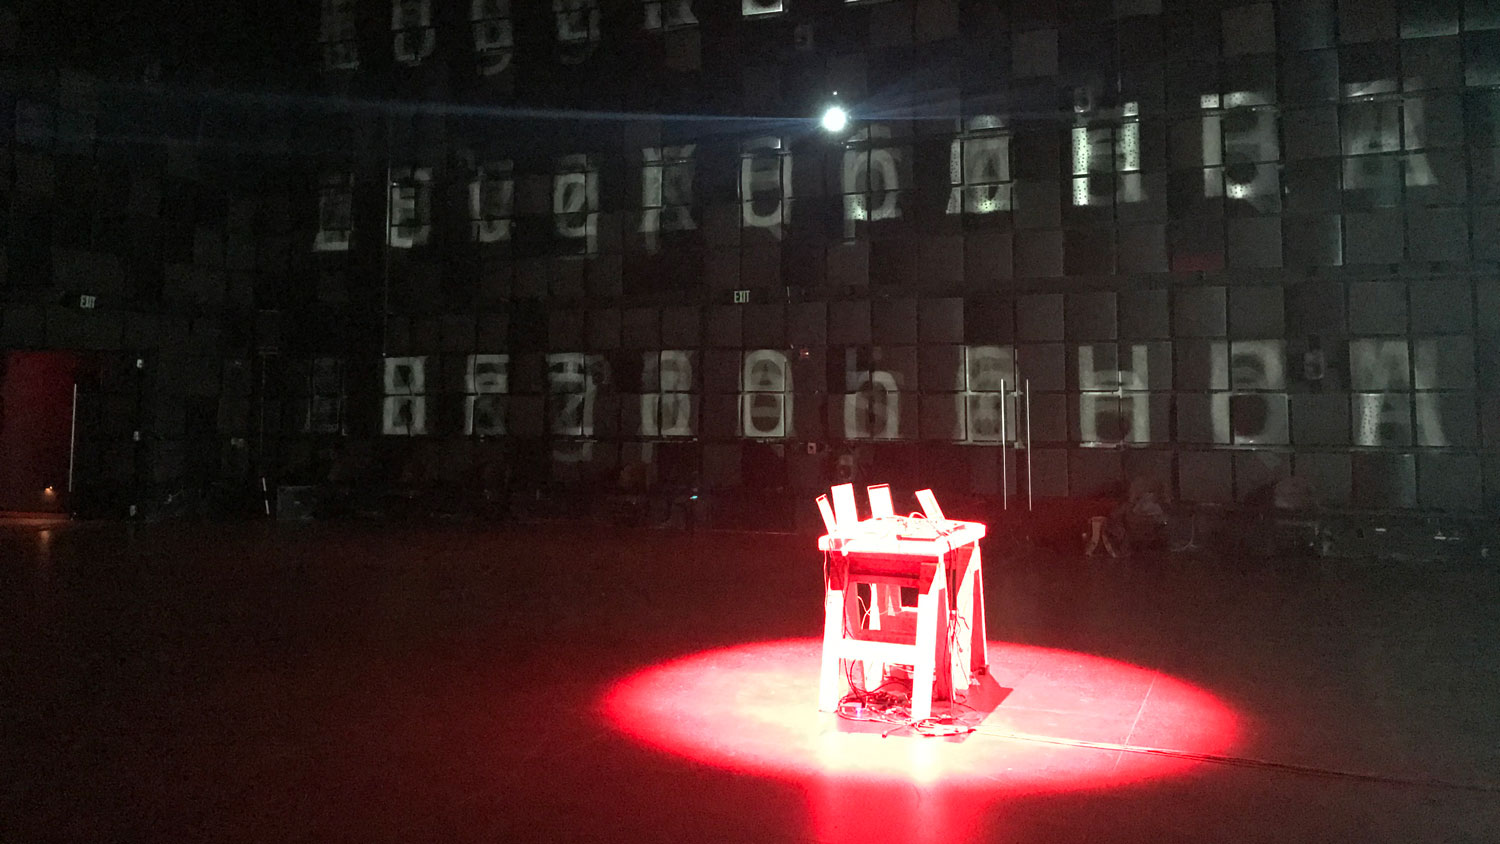 a table bathed in red with letters projected on the walls